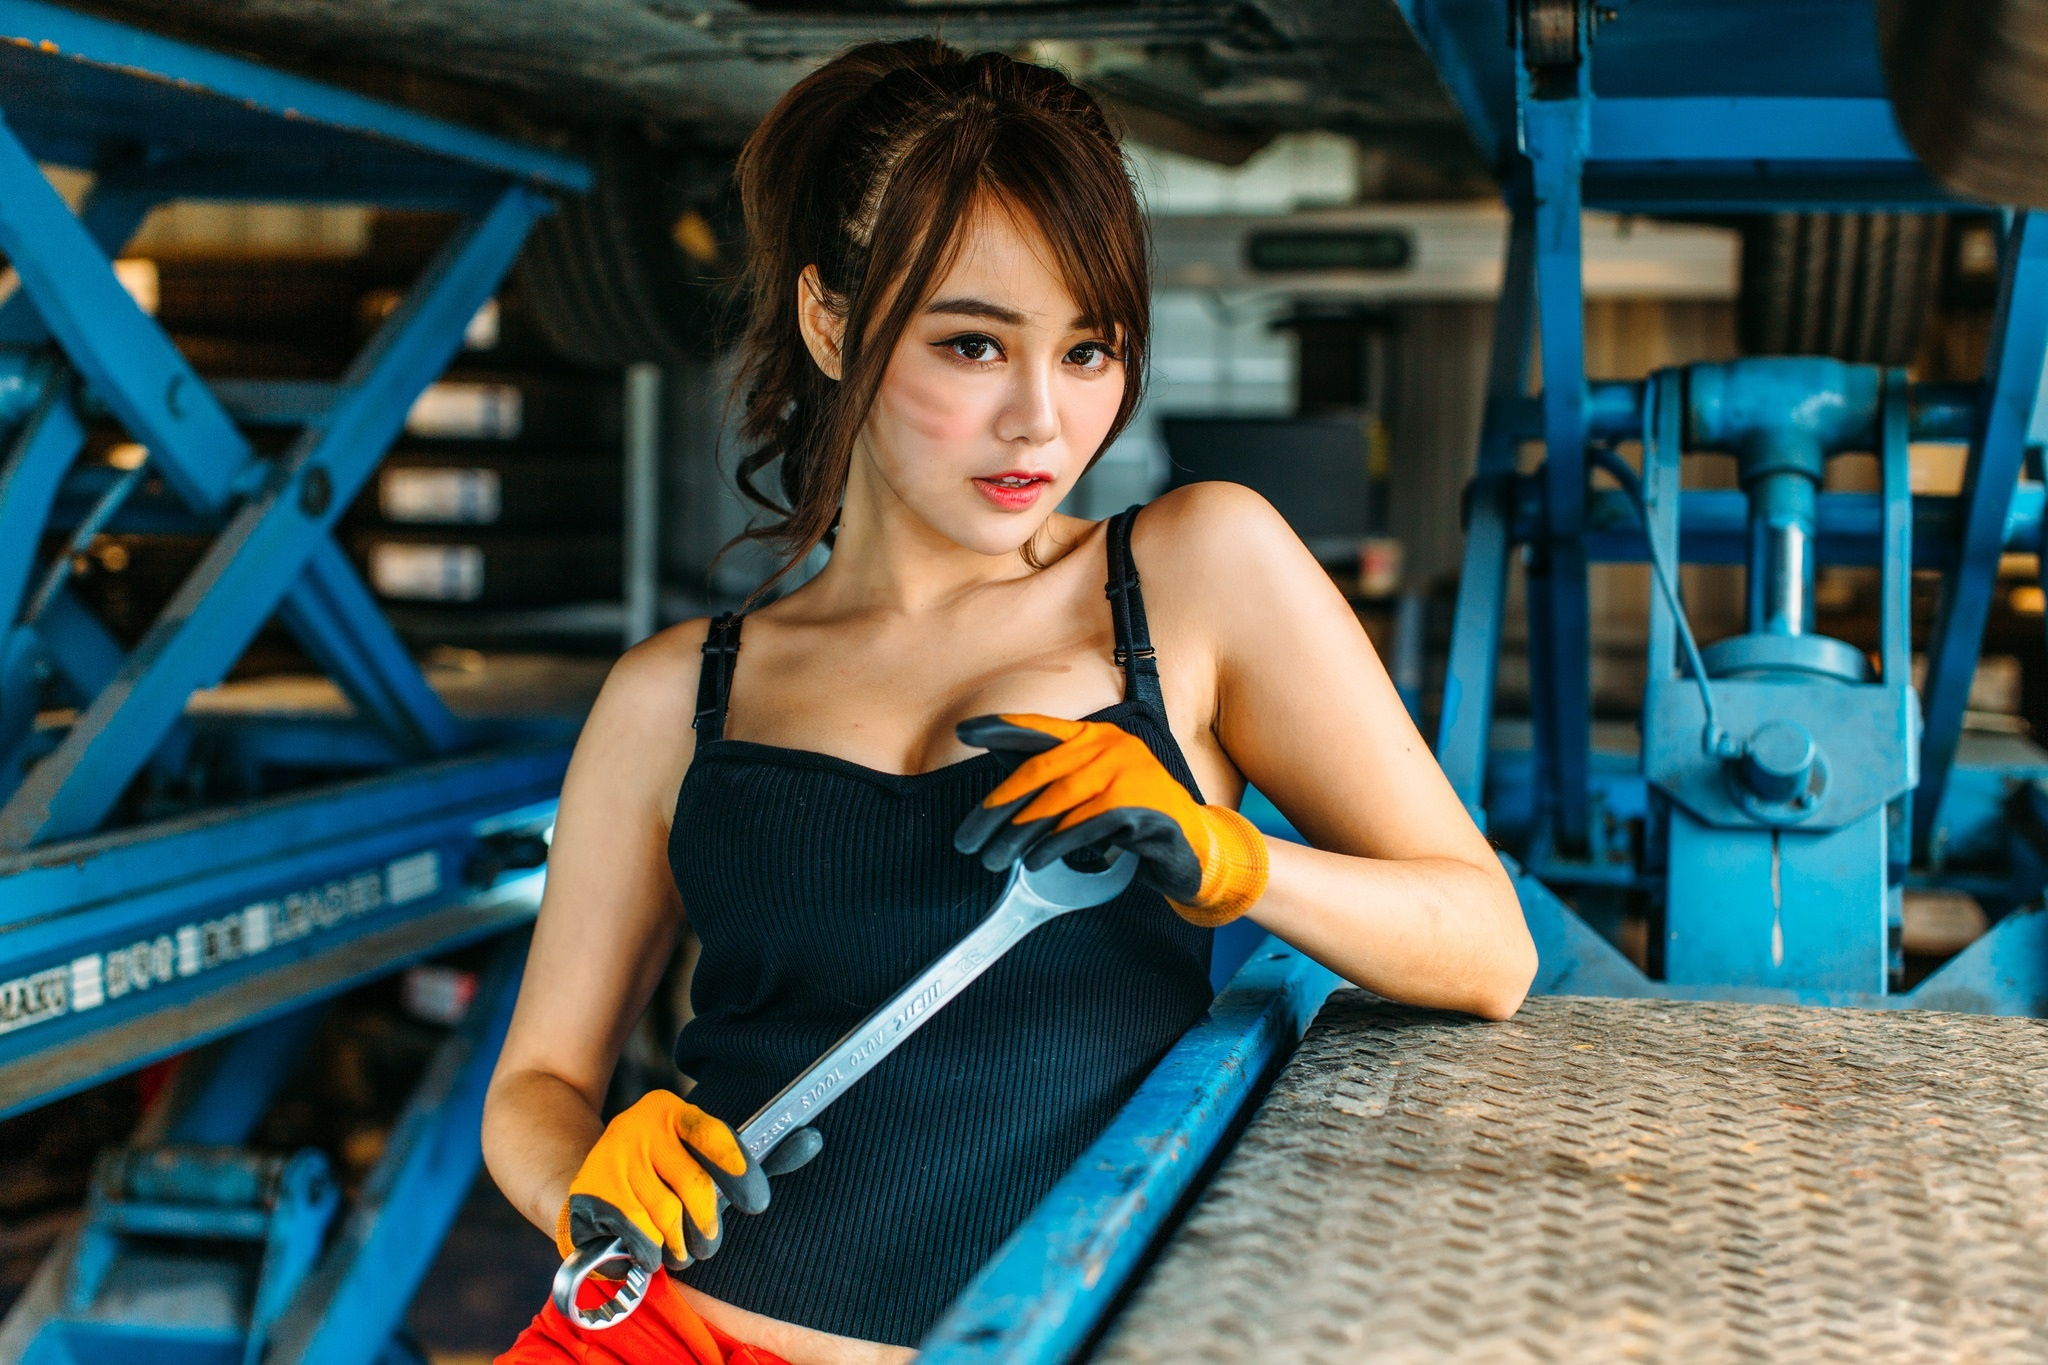 Image: Girl, asian, wrench, gloves, machines, iron, sight